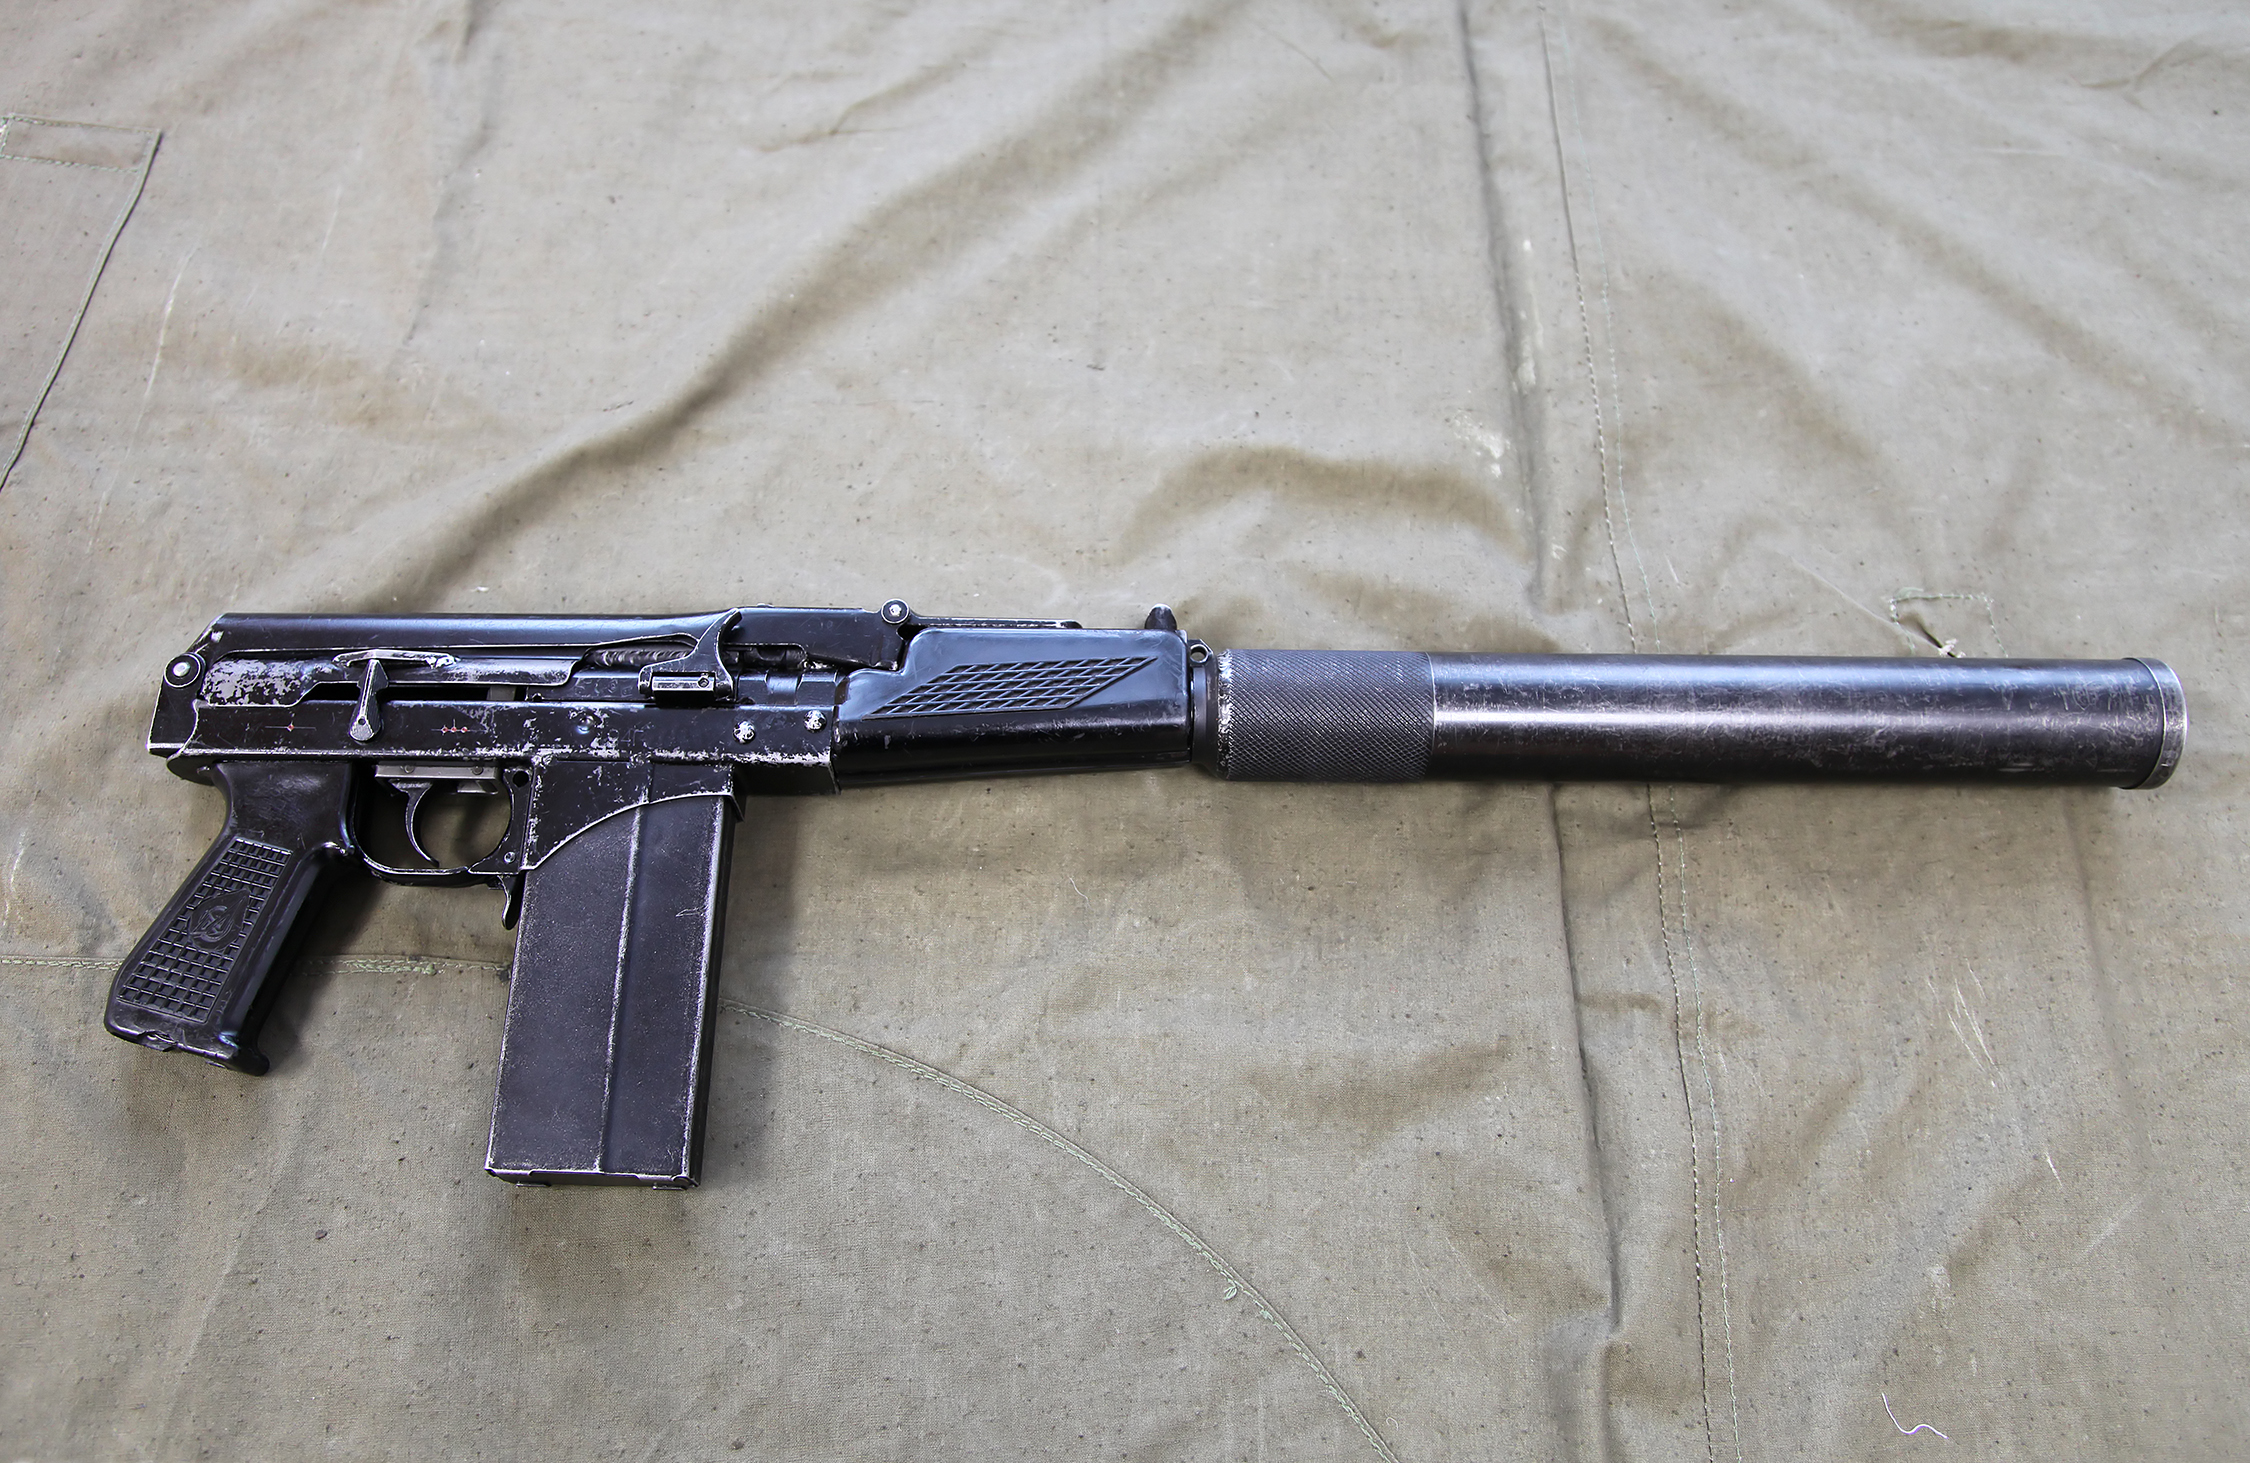 File:9mm KBP 9A-91 compact assault rifle - 15.jpg